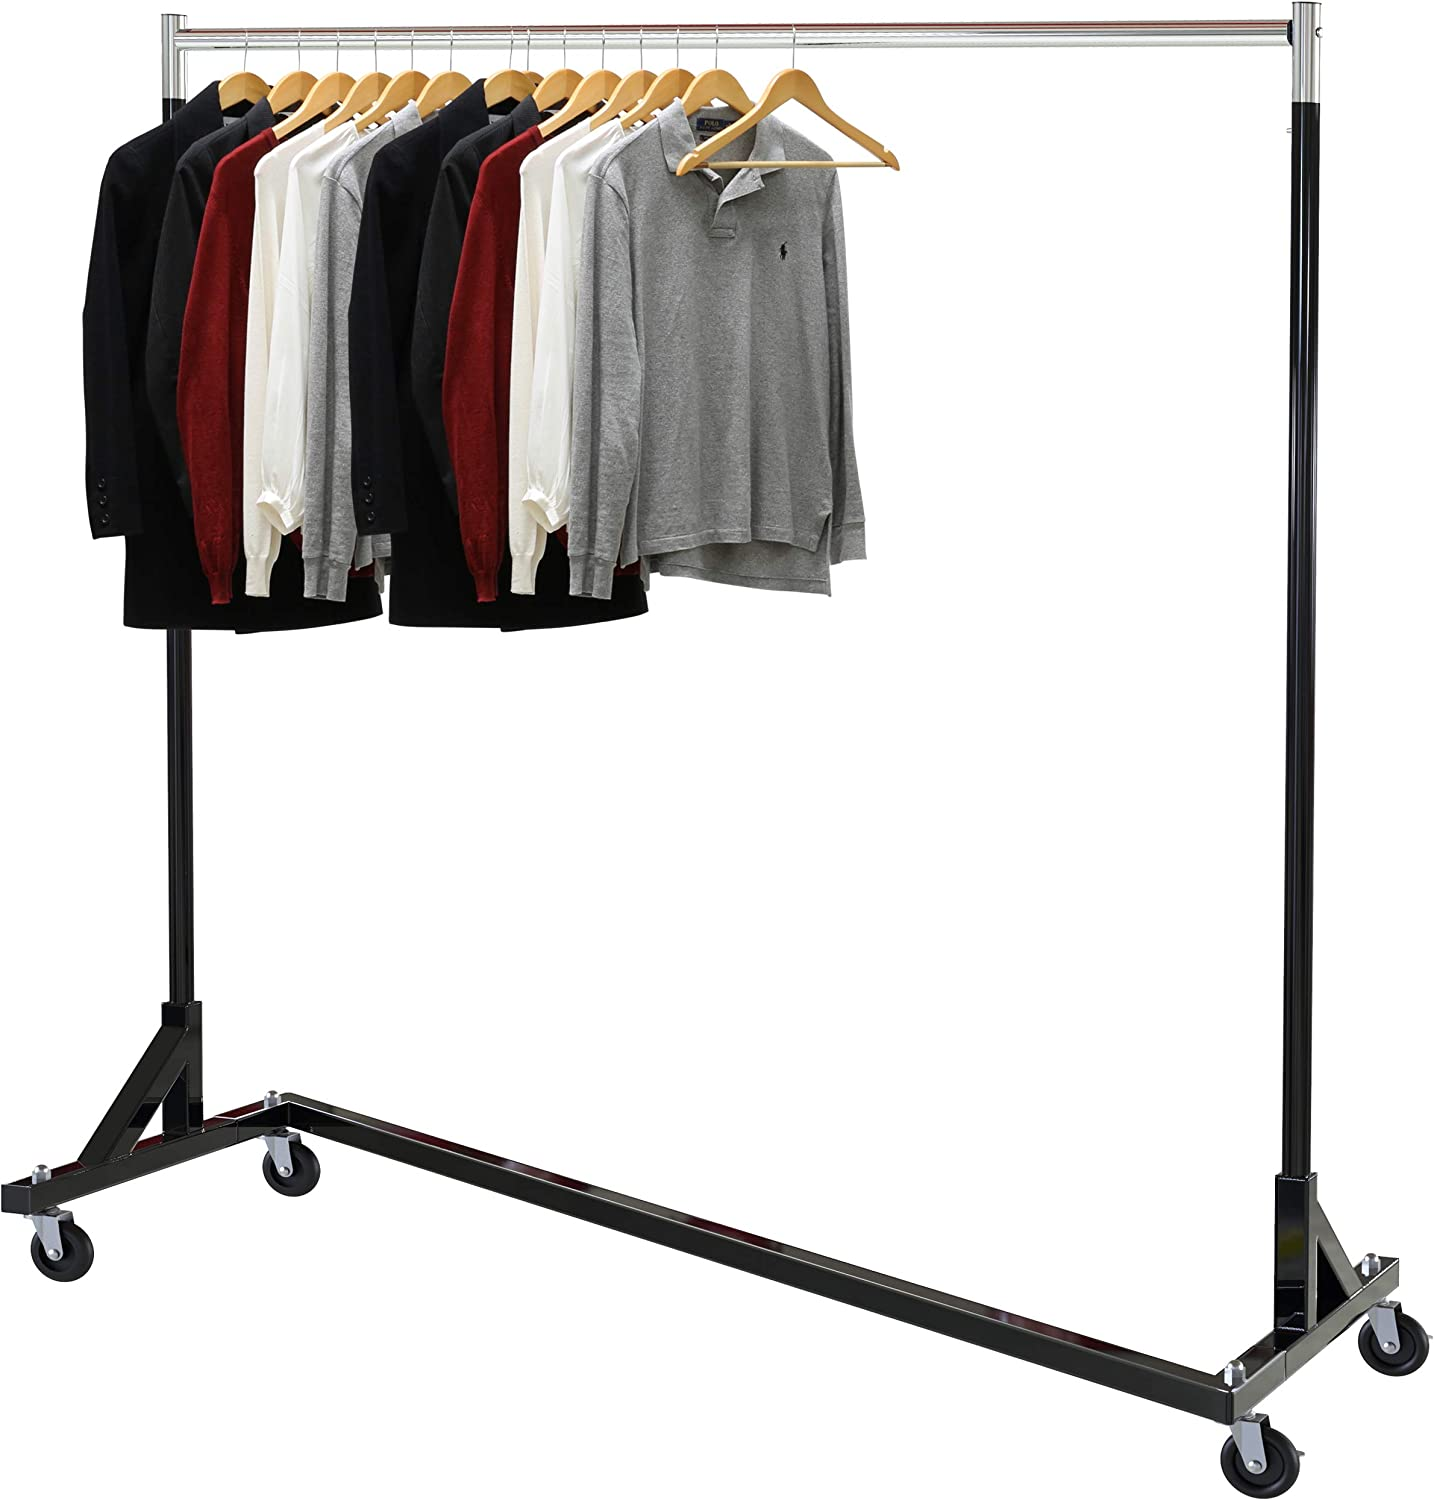 Simple Houseware Commercial Z Base Garment Rack, Black